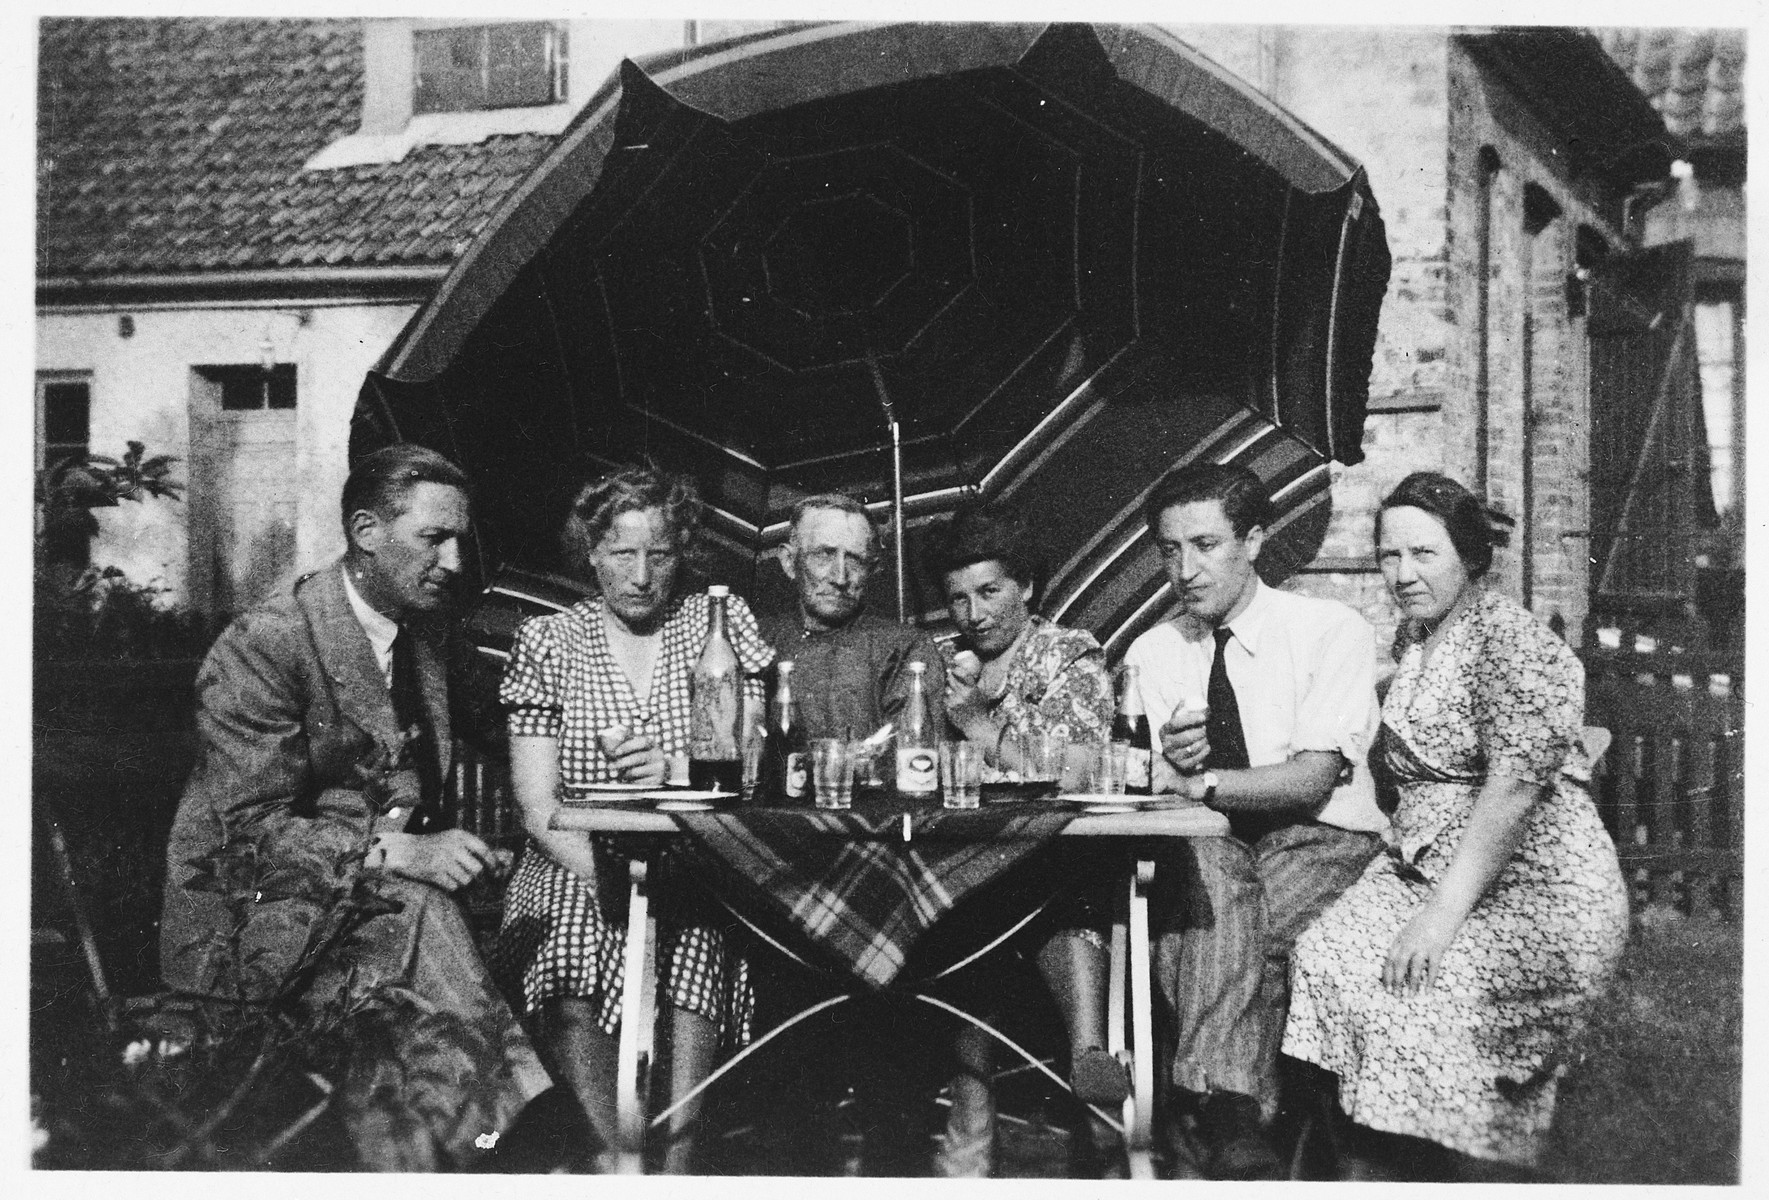 A Jewish couple from Denmark who was ferried to safety in Sweden poses with the Swedish family who hosted them in the backyard of their home in Landskrona.  Pictured from left to right are Mane and Daisy Magnuson, Manes brother, Kaja and Josef Geldmann, and Mane's sister.